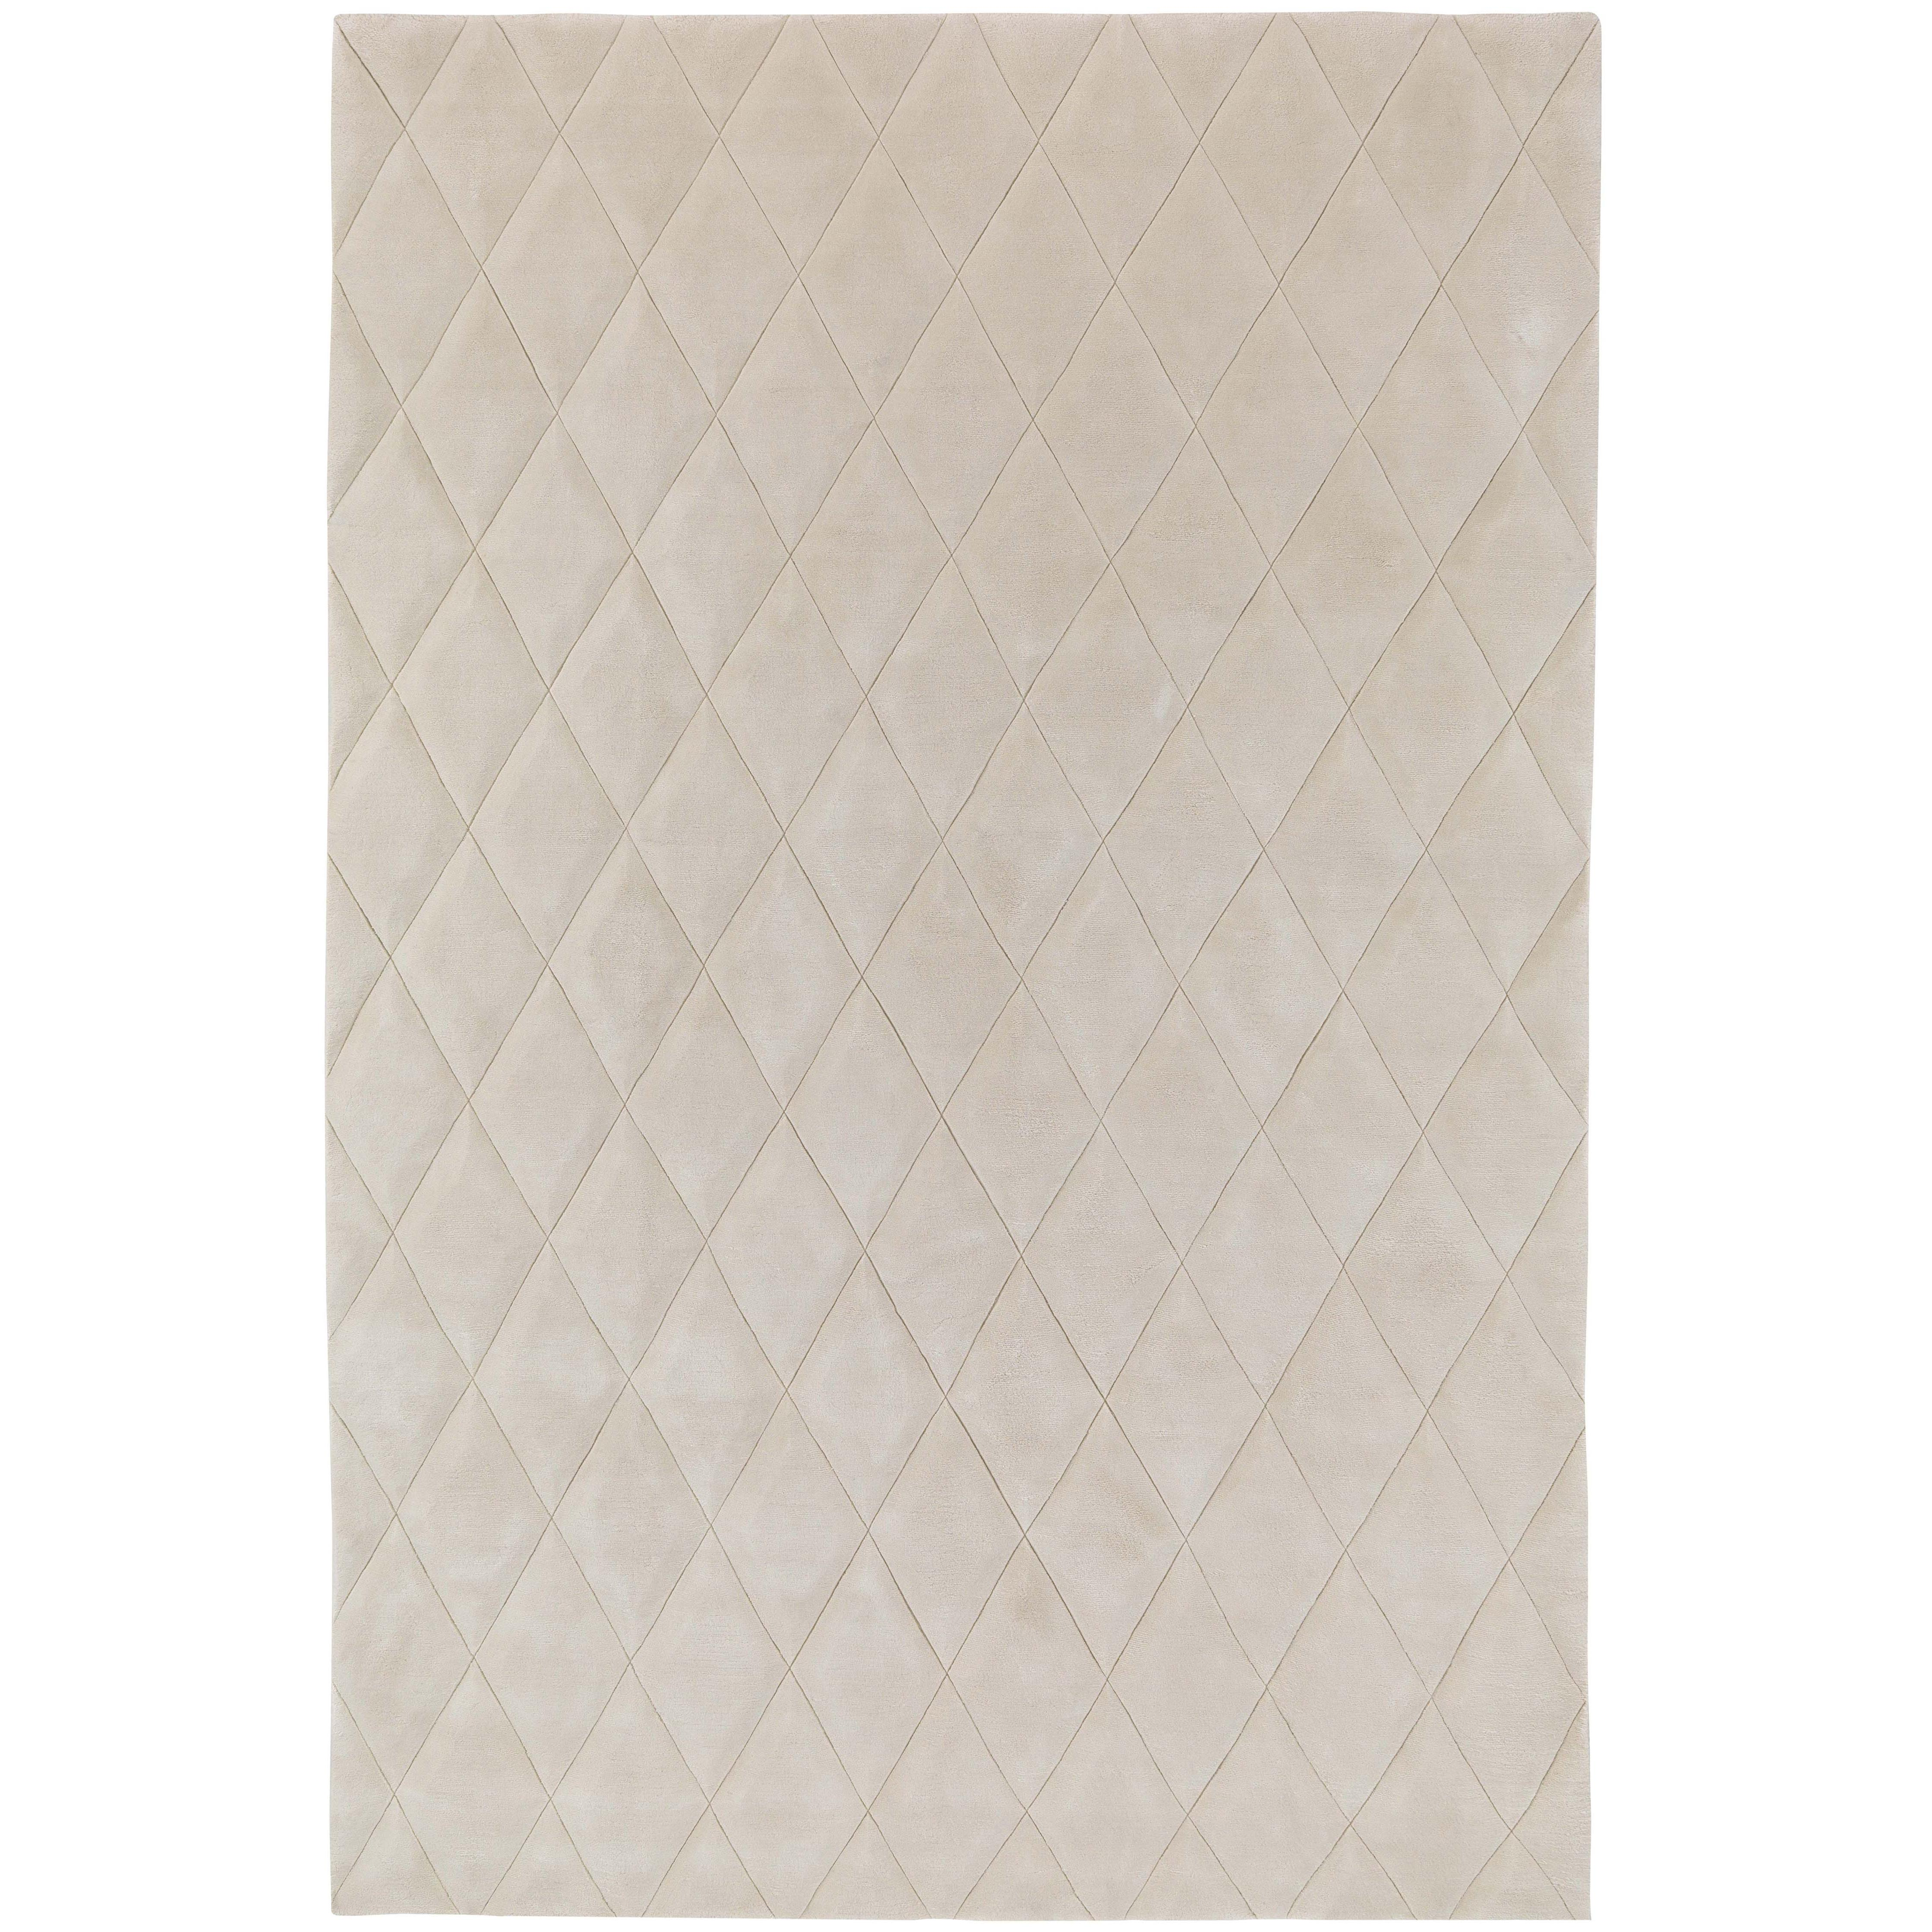 Capitone Hand-Knotted 10x8 Rug in Wool by Jaime Hayon